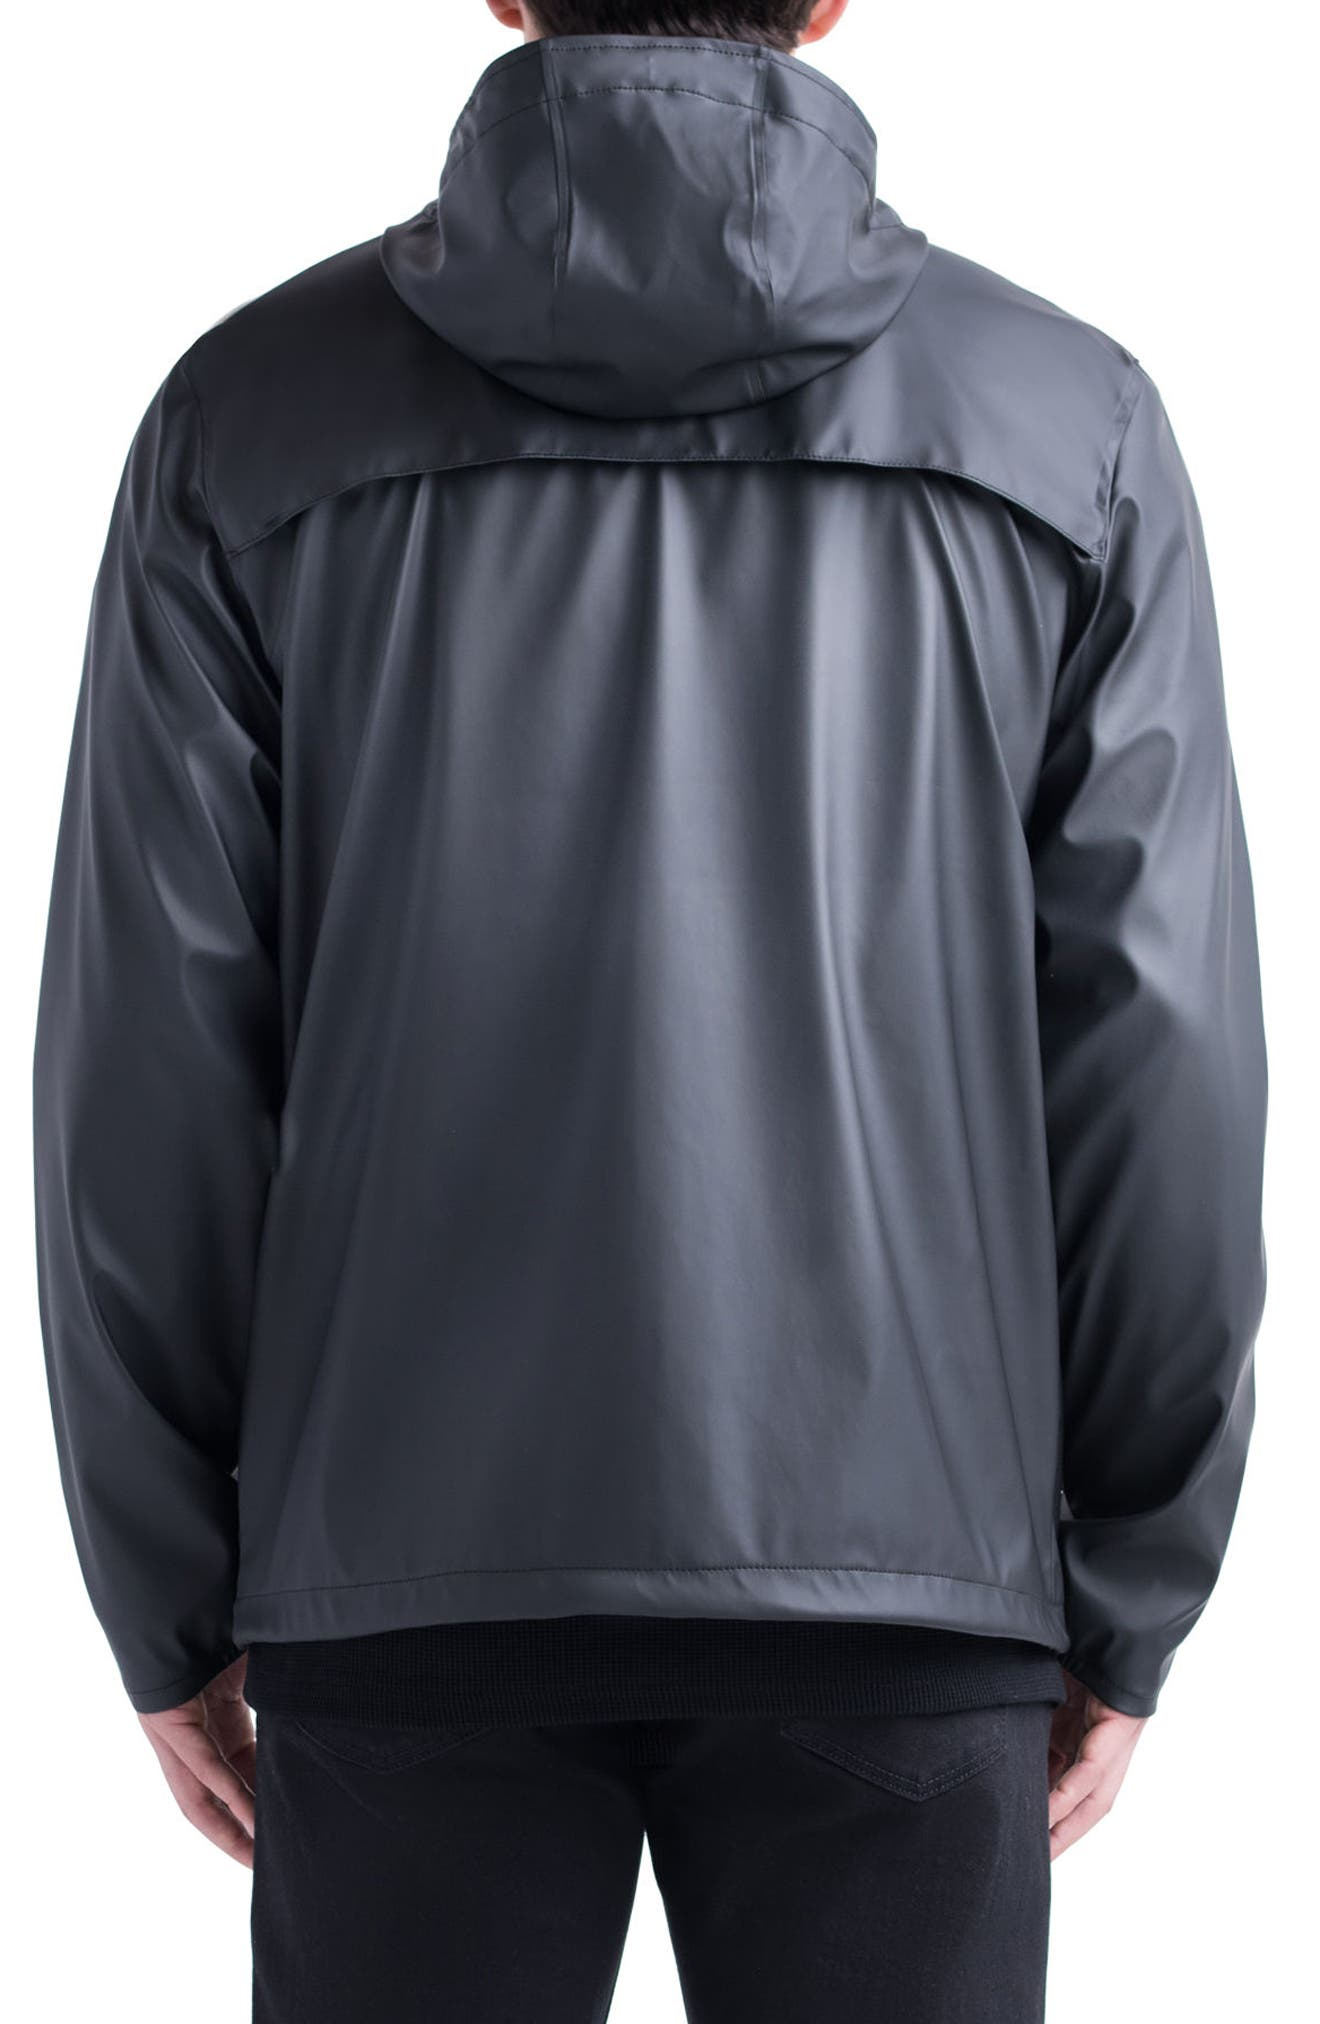 Forecast Hooded Coaches Jacket,                             Alternate thumbnail 2, color,                             002